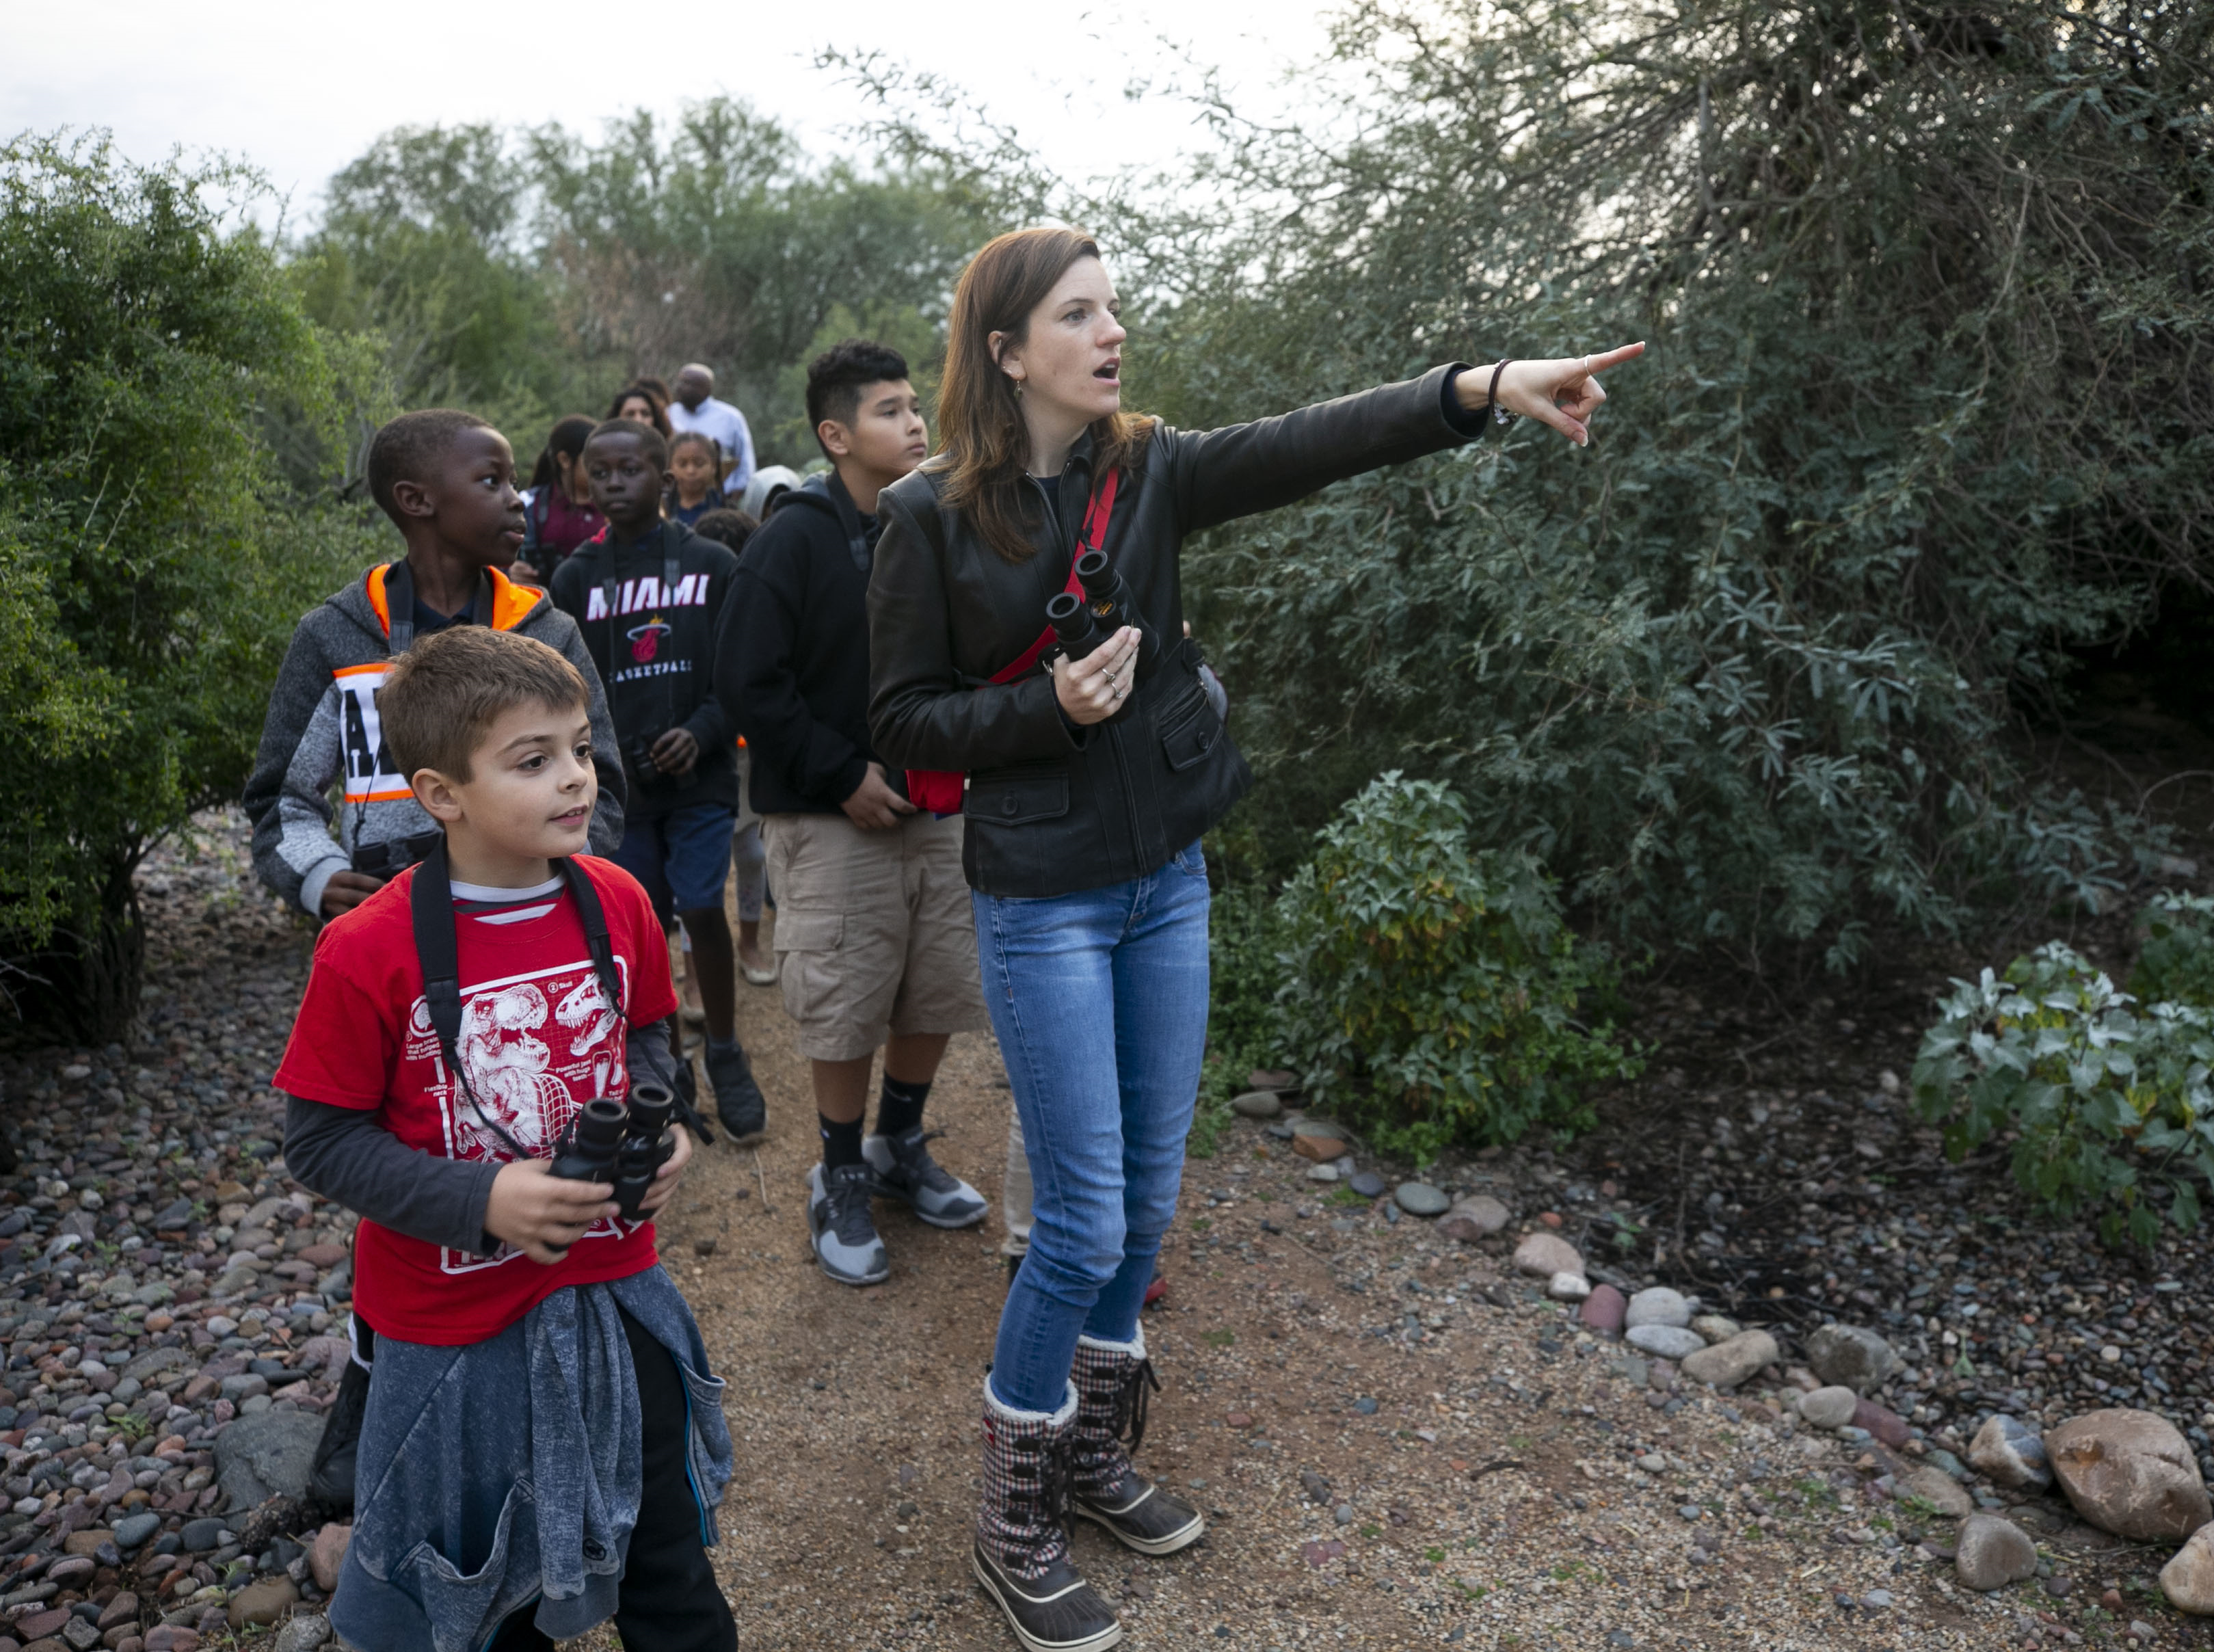 Saturday morning bird walk | Join local bird enthusiasts for a guided walk through the Rio Salado habitat restoration area. All ages, experts and novices, are all welcome. | Details: 8-9 a.m. Saturday, March 16 and 23. Nina Mason Pulliam Rio Salado Audubon Center, 3131 S. Central Ave., Phoenix. Free. 602-468-6470, riosalado.audubon.org/events/